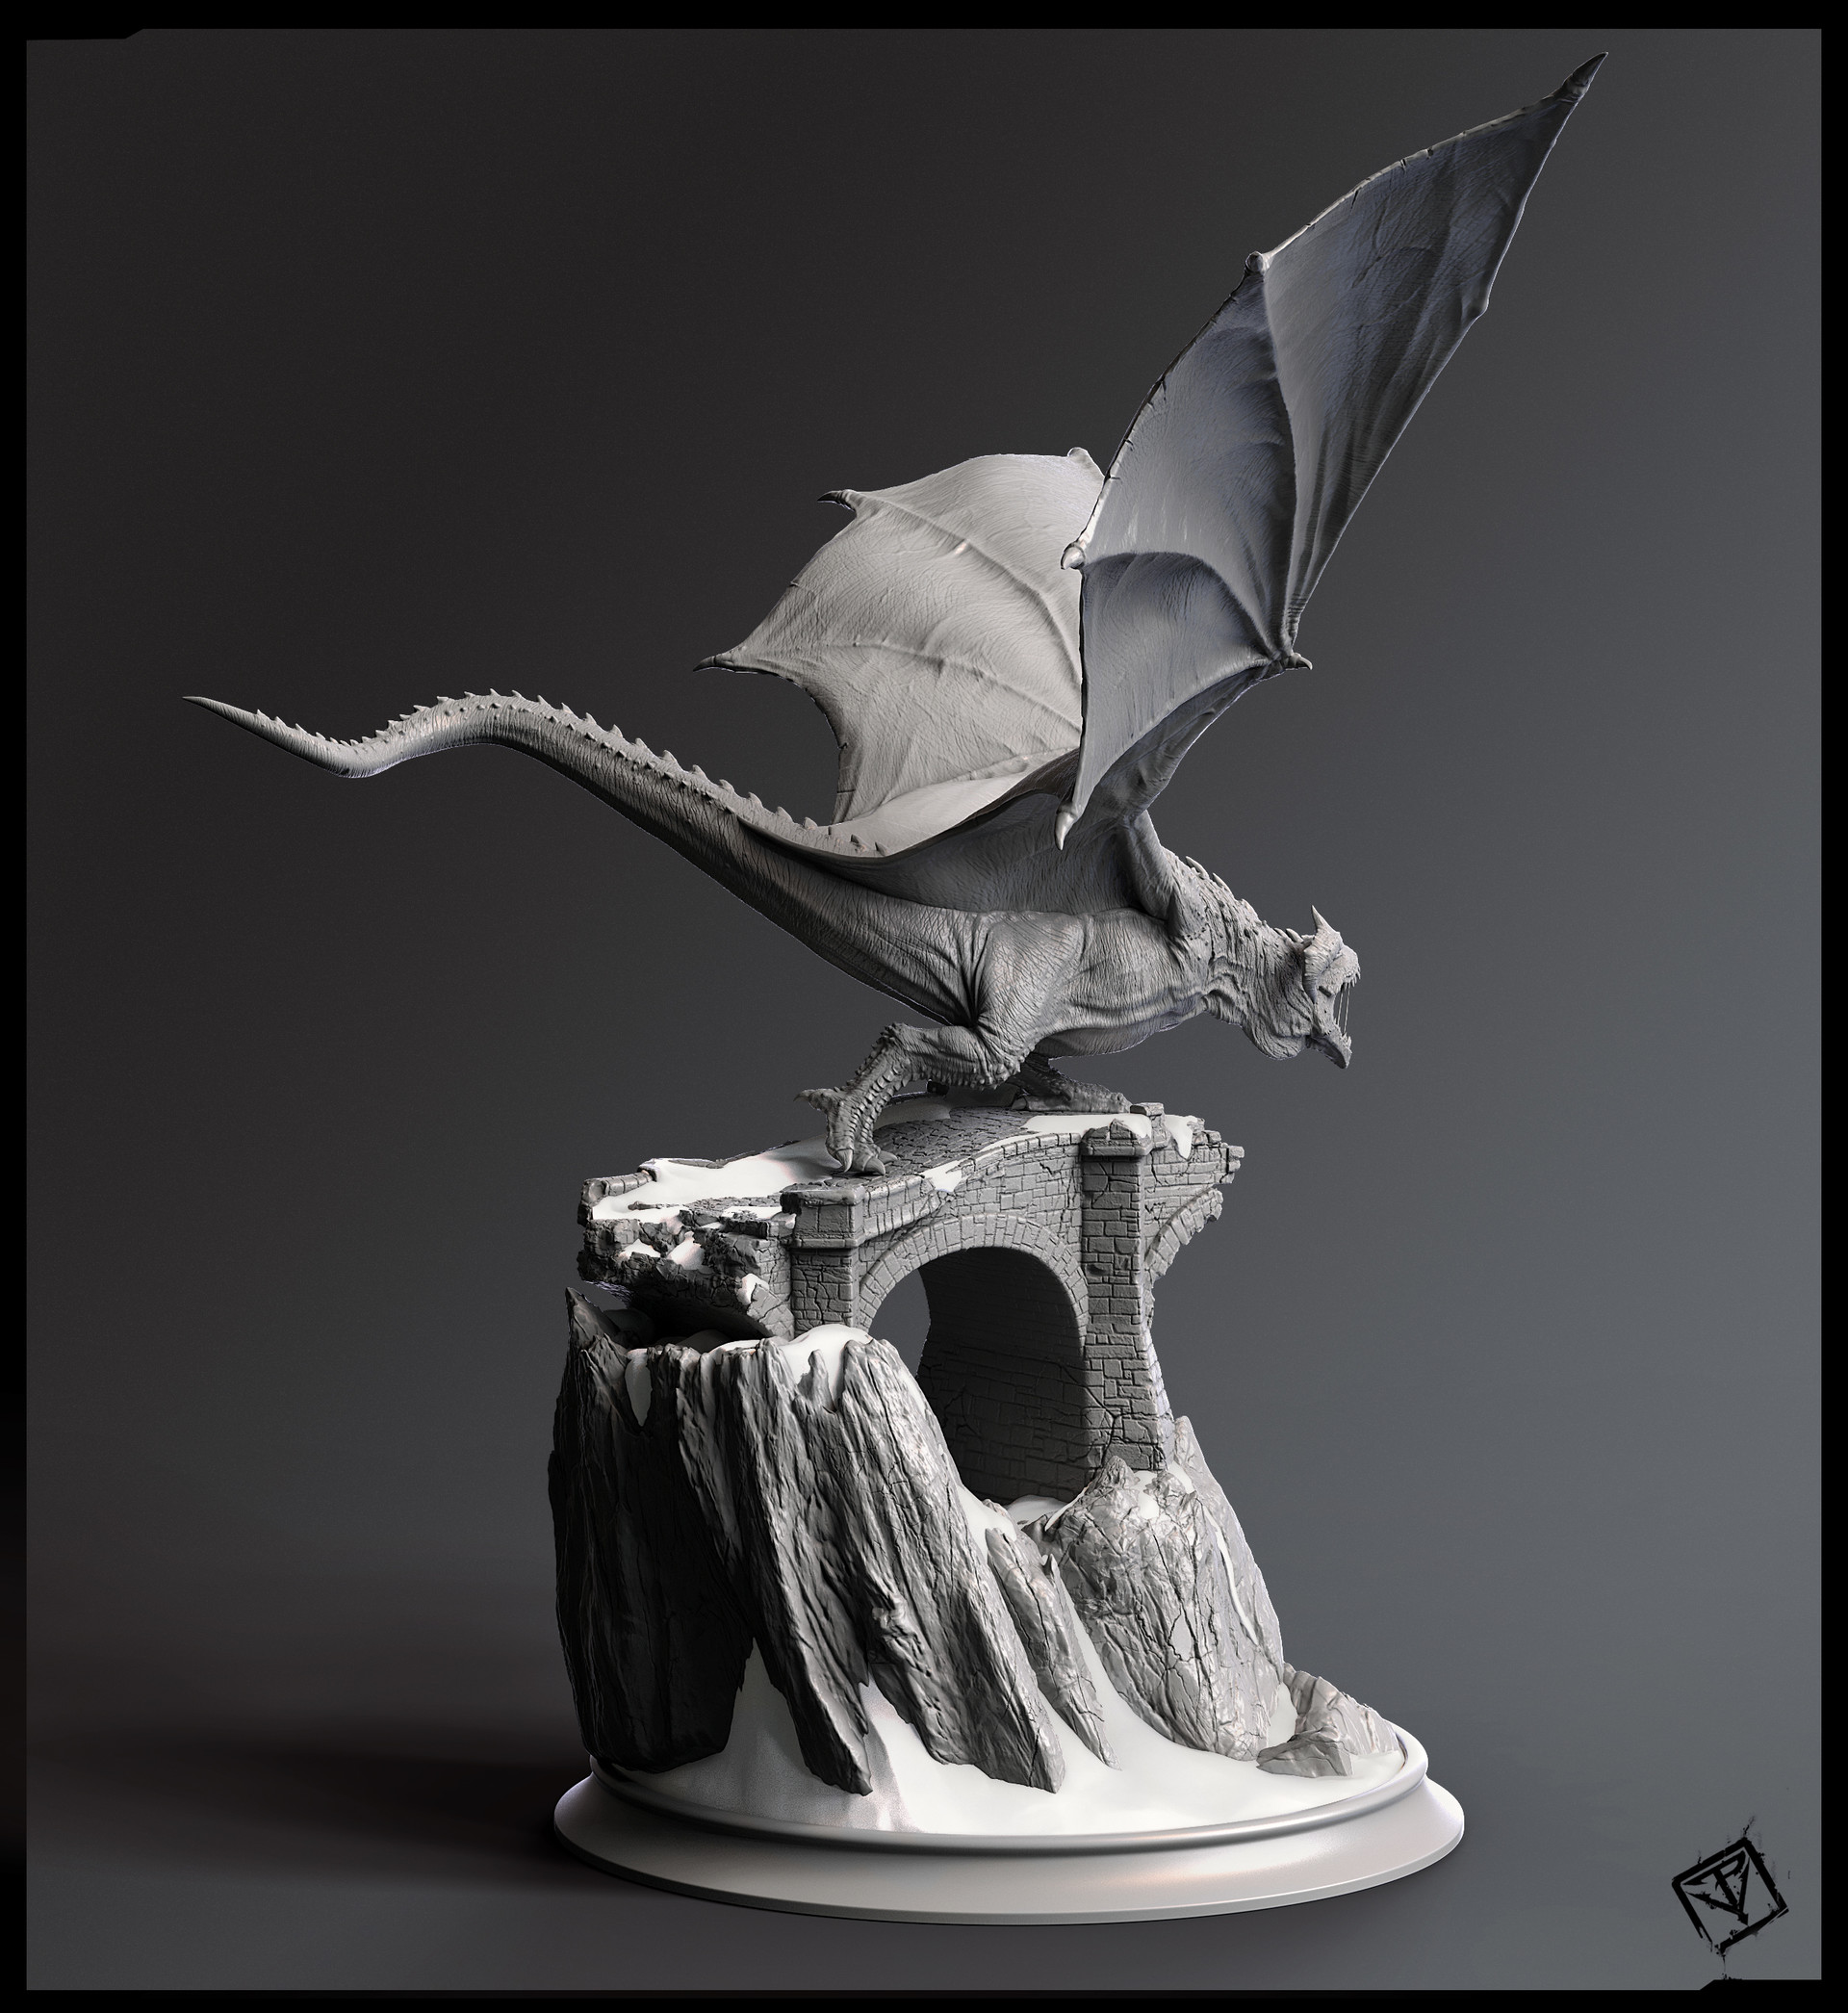 Pablo vicentin new dragon scene 02